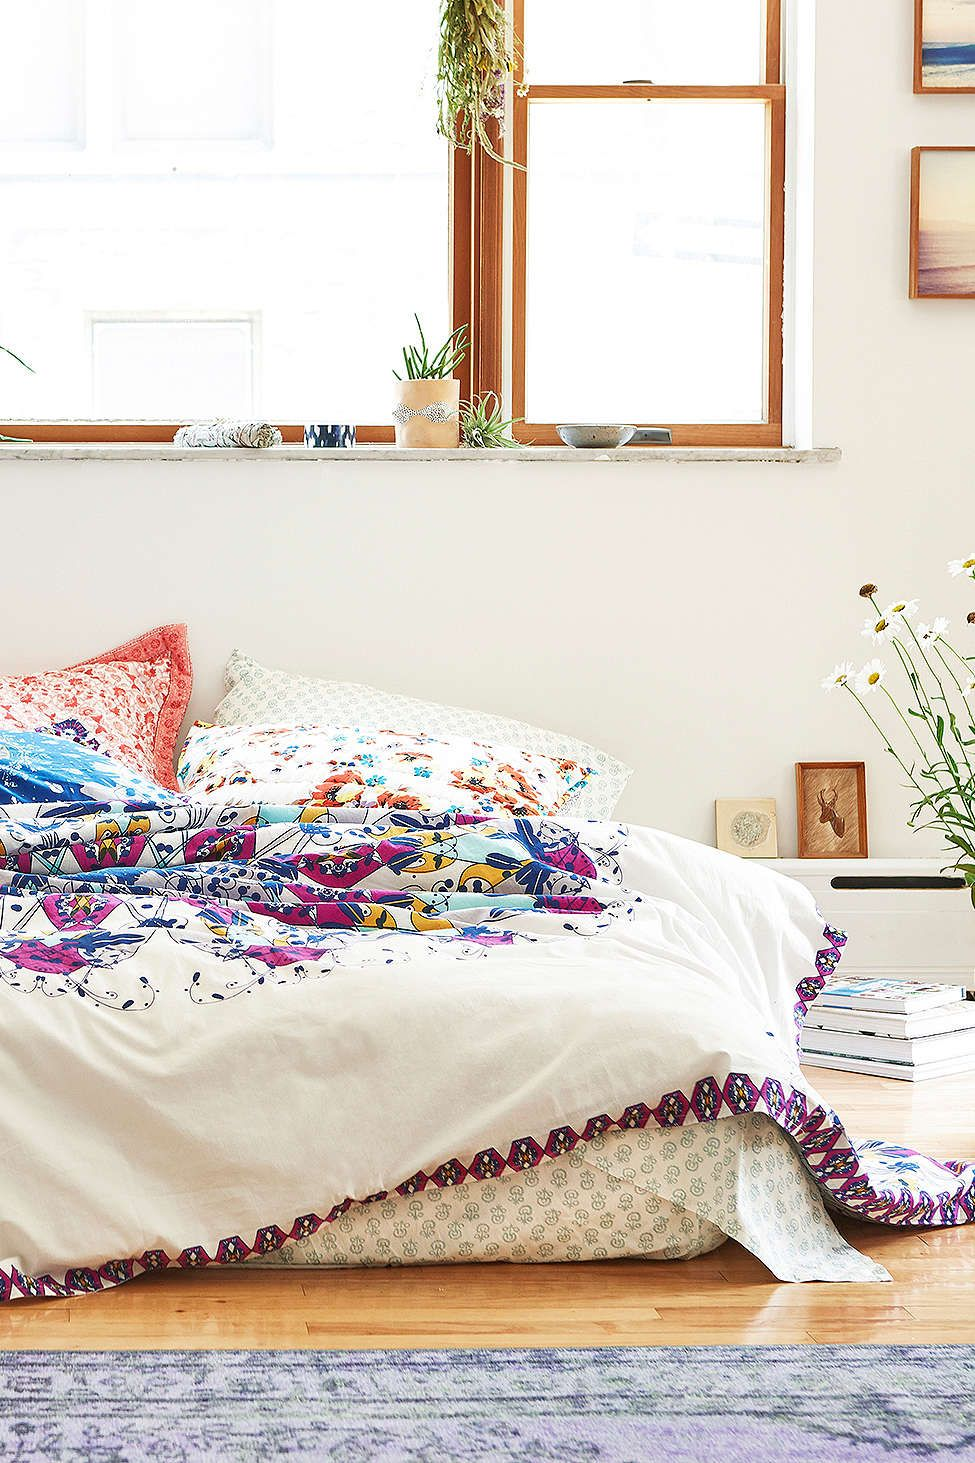 Magical Thinking Luna Medallion Duvet Cover - Urban Outfitters #UOonCampus